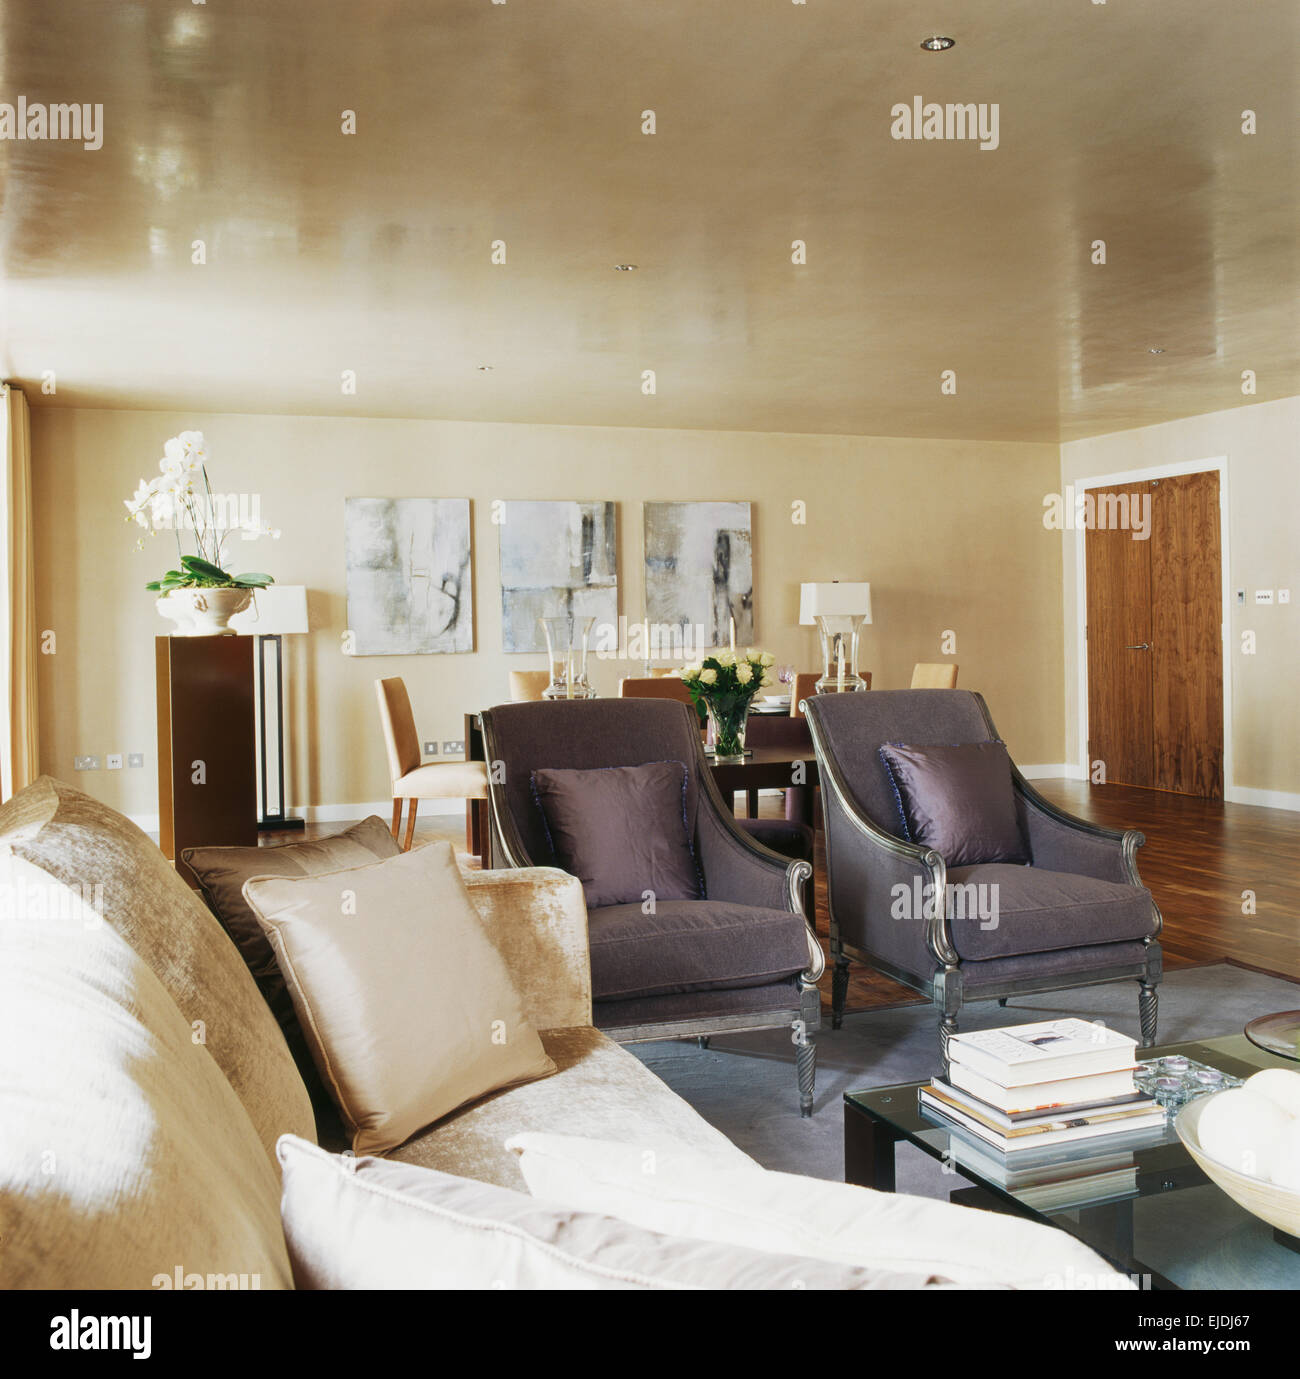 Grey Velvet Chairs And Cream Velvet Sofa In Modern Apartment Living Room  With Lacquer Effect Ceiling